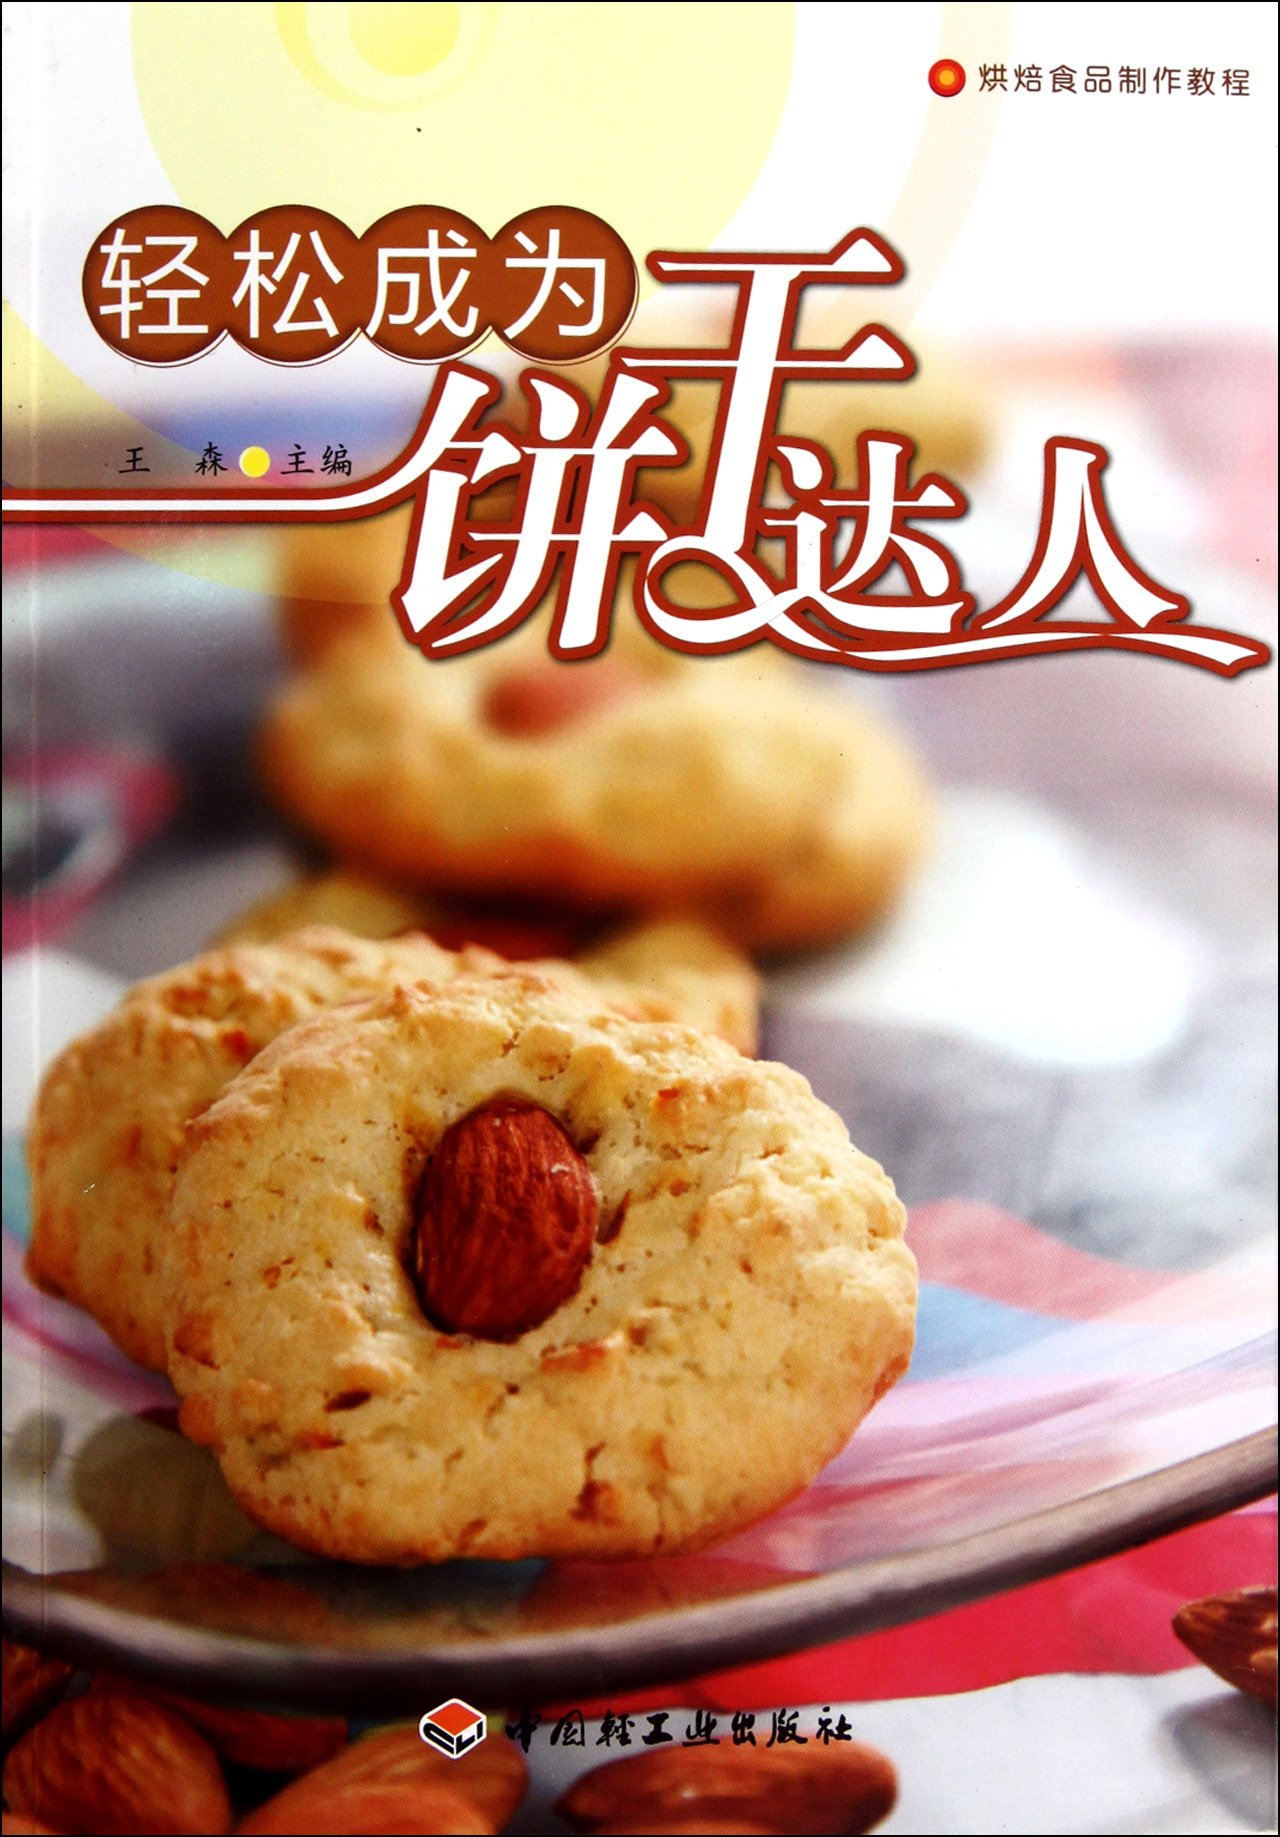 How to be a Cookie Cook Easily? -Tutorial of Making Bakery